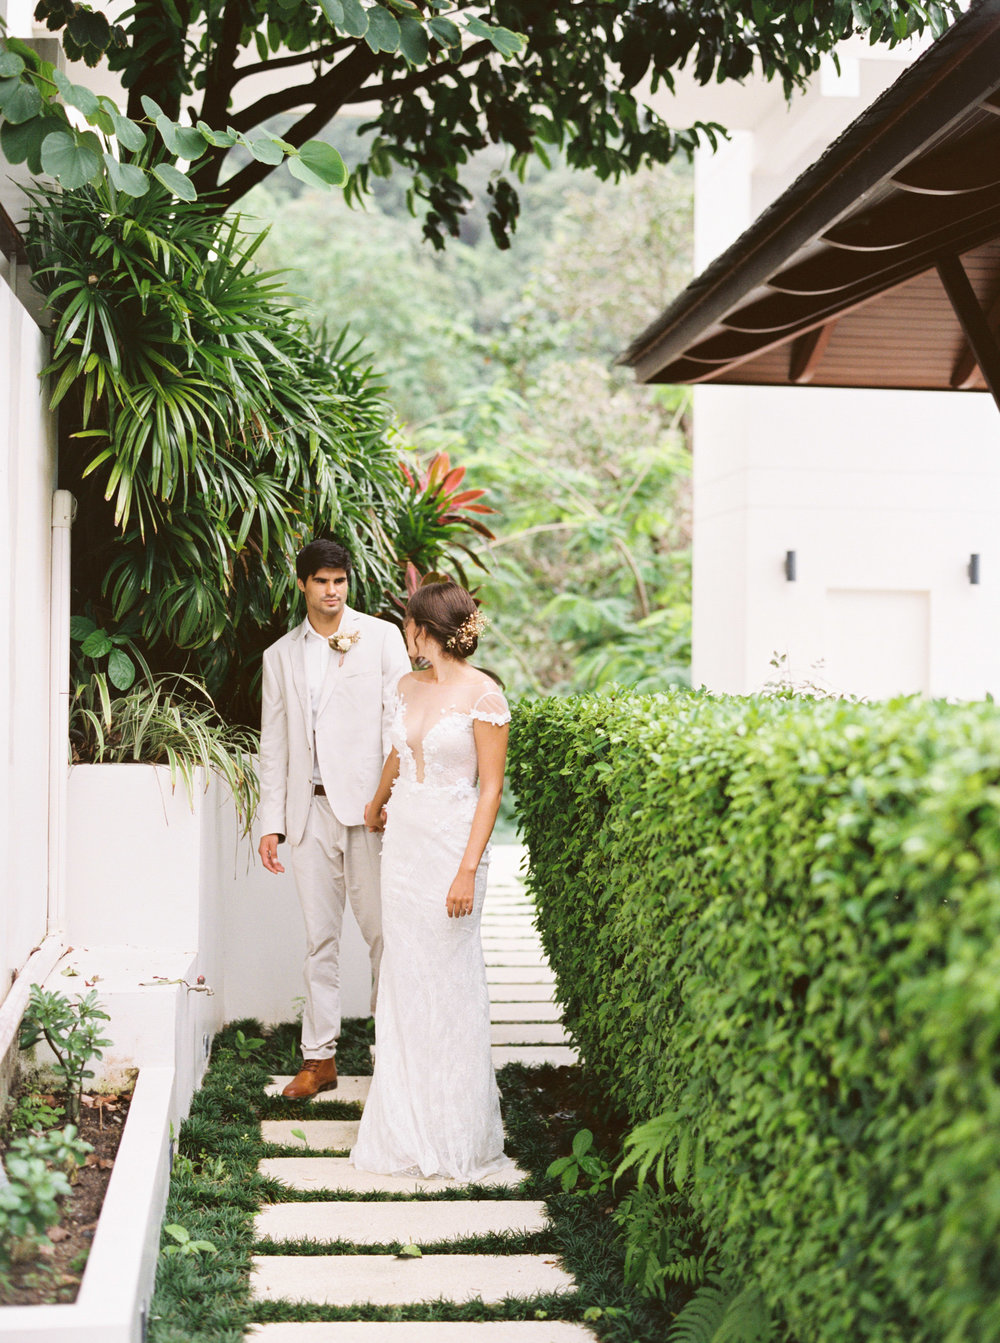 Destination Wedding Phuket Thailand Fine Art Film Photographer Sheri McMahon-00038-38.jpg